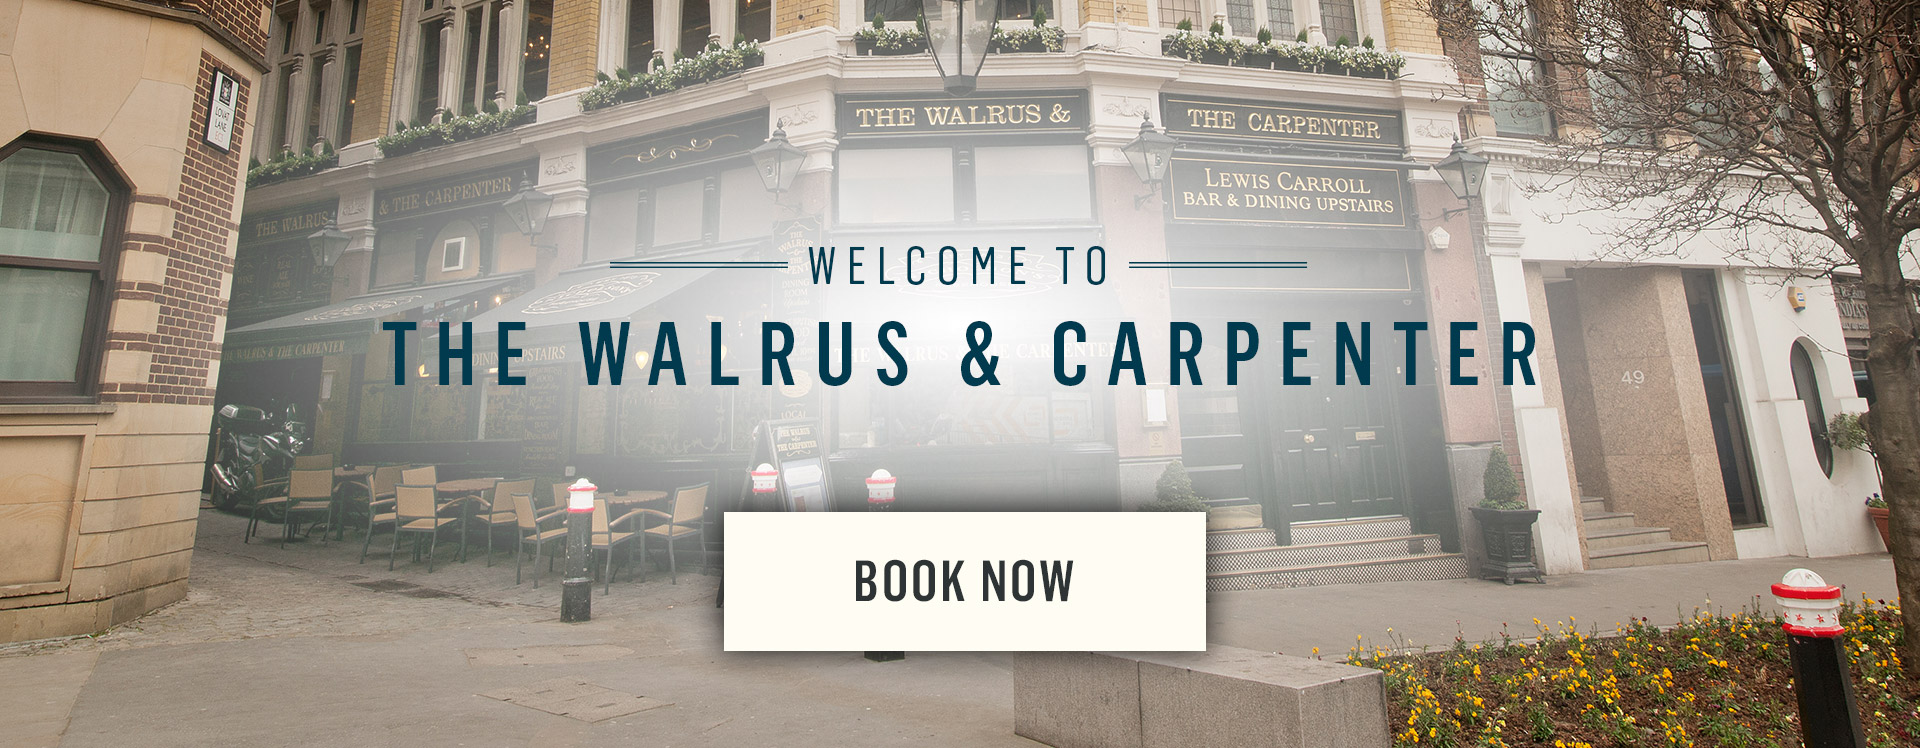 Welcome to The Walrus and The Carpenter - Book Now